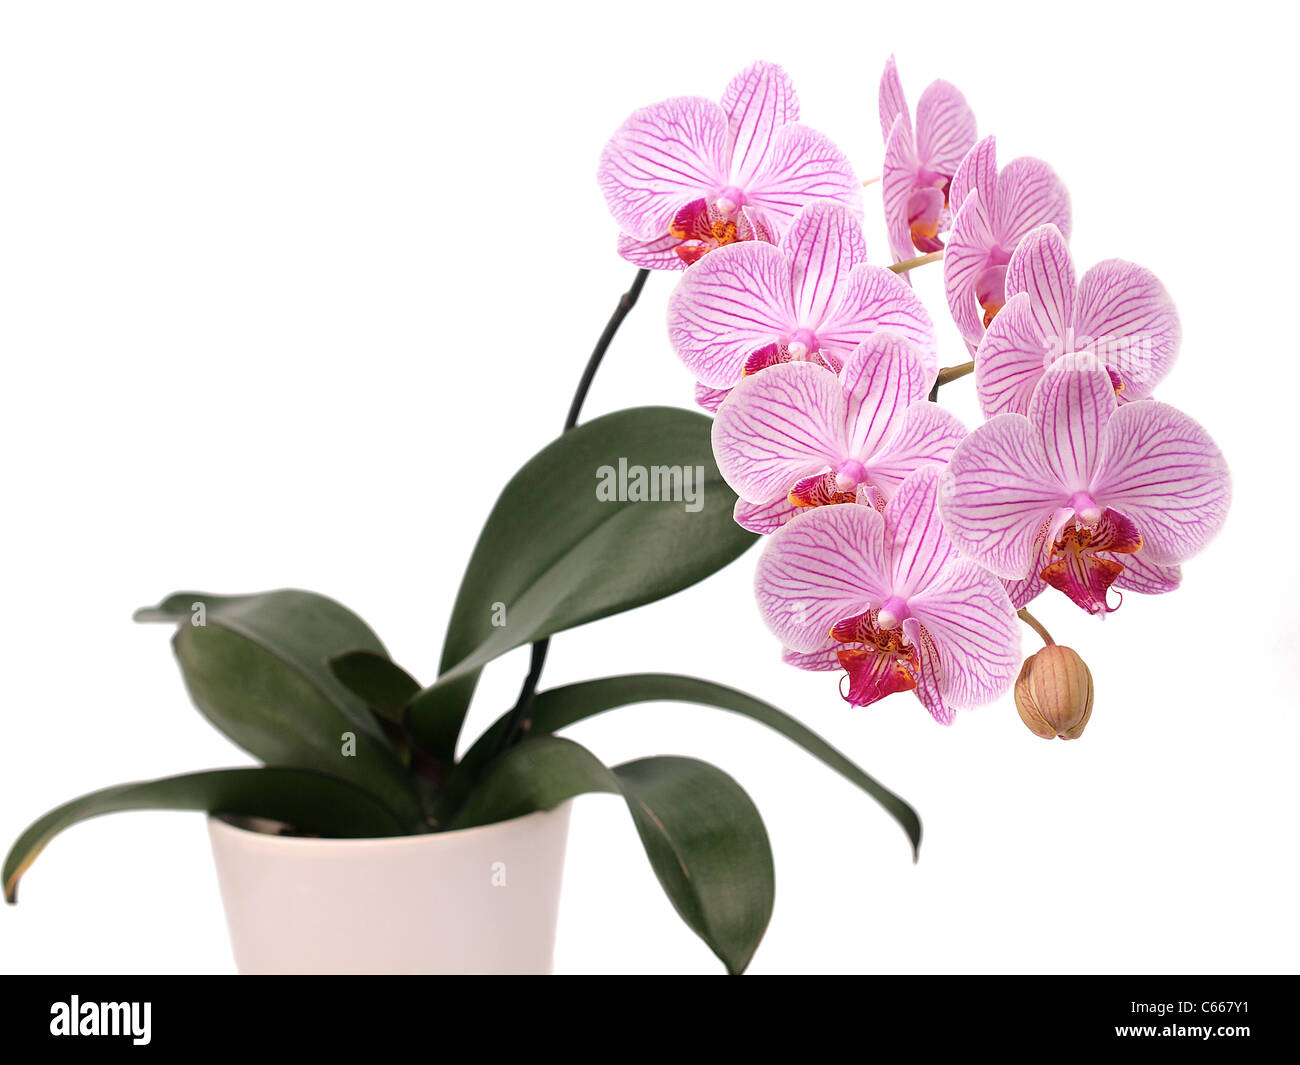 Flower symbol orchid plant stock photos flower symbol orchid plant orchid flower stock image mightylinksfo